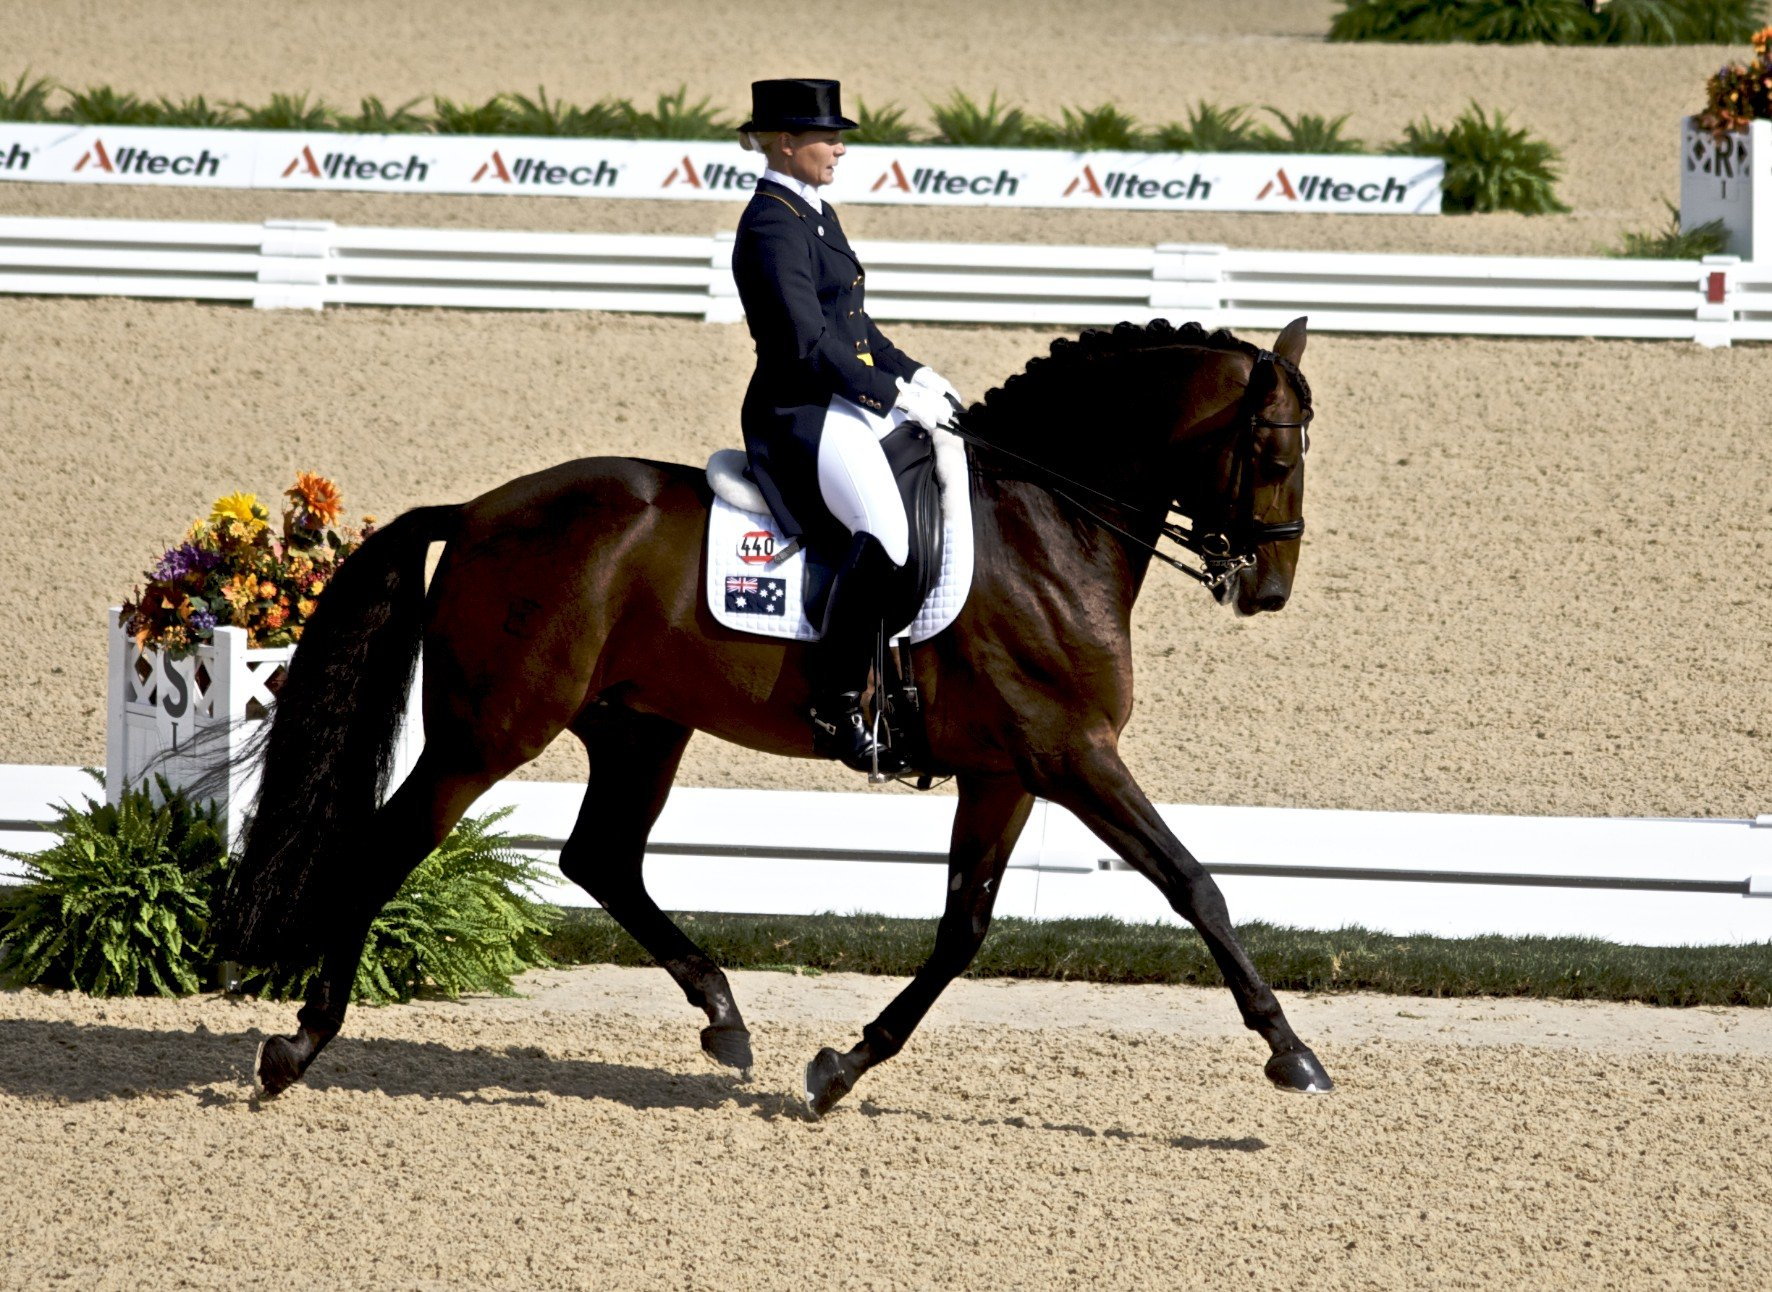 http://kohuku.ru/uploads/posts/2014-01/1390392403_weg_2010_-_dressage_qualifying.jpg